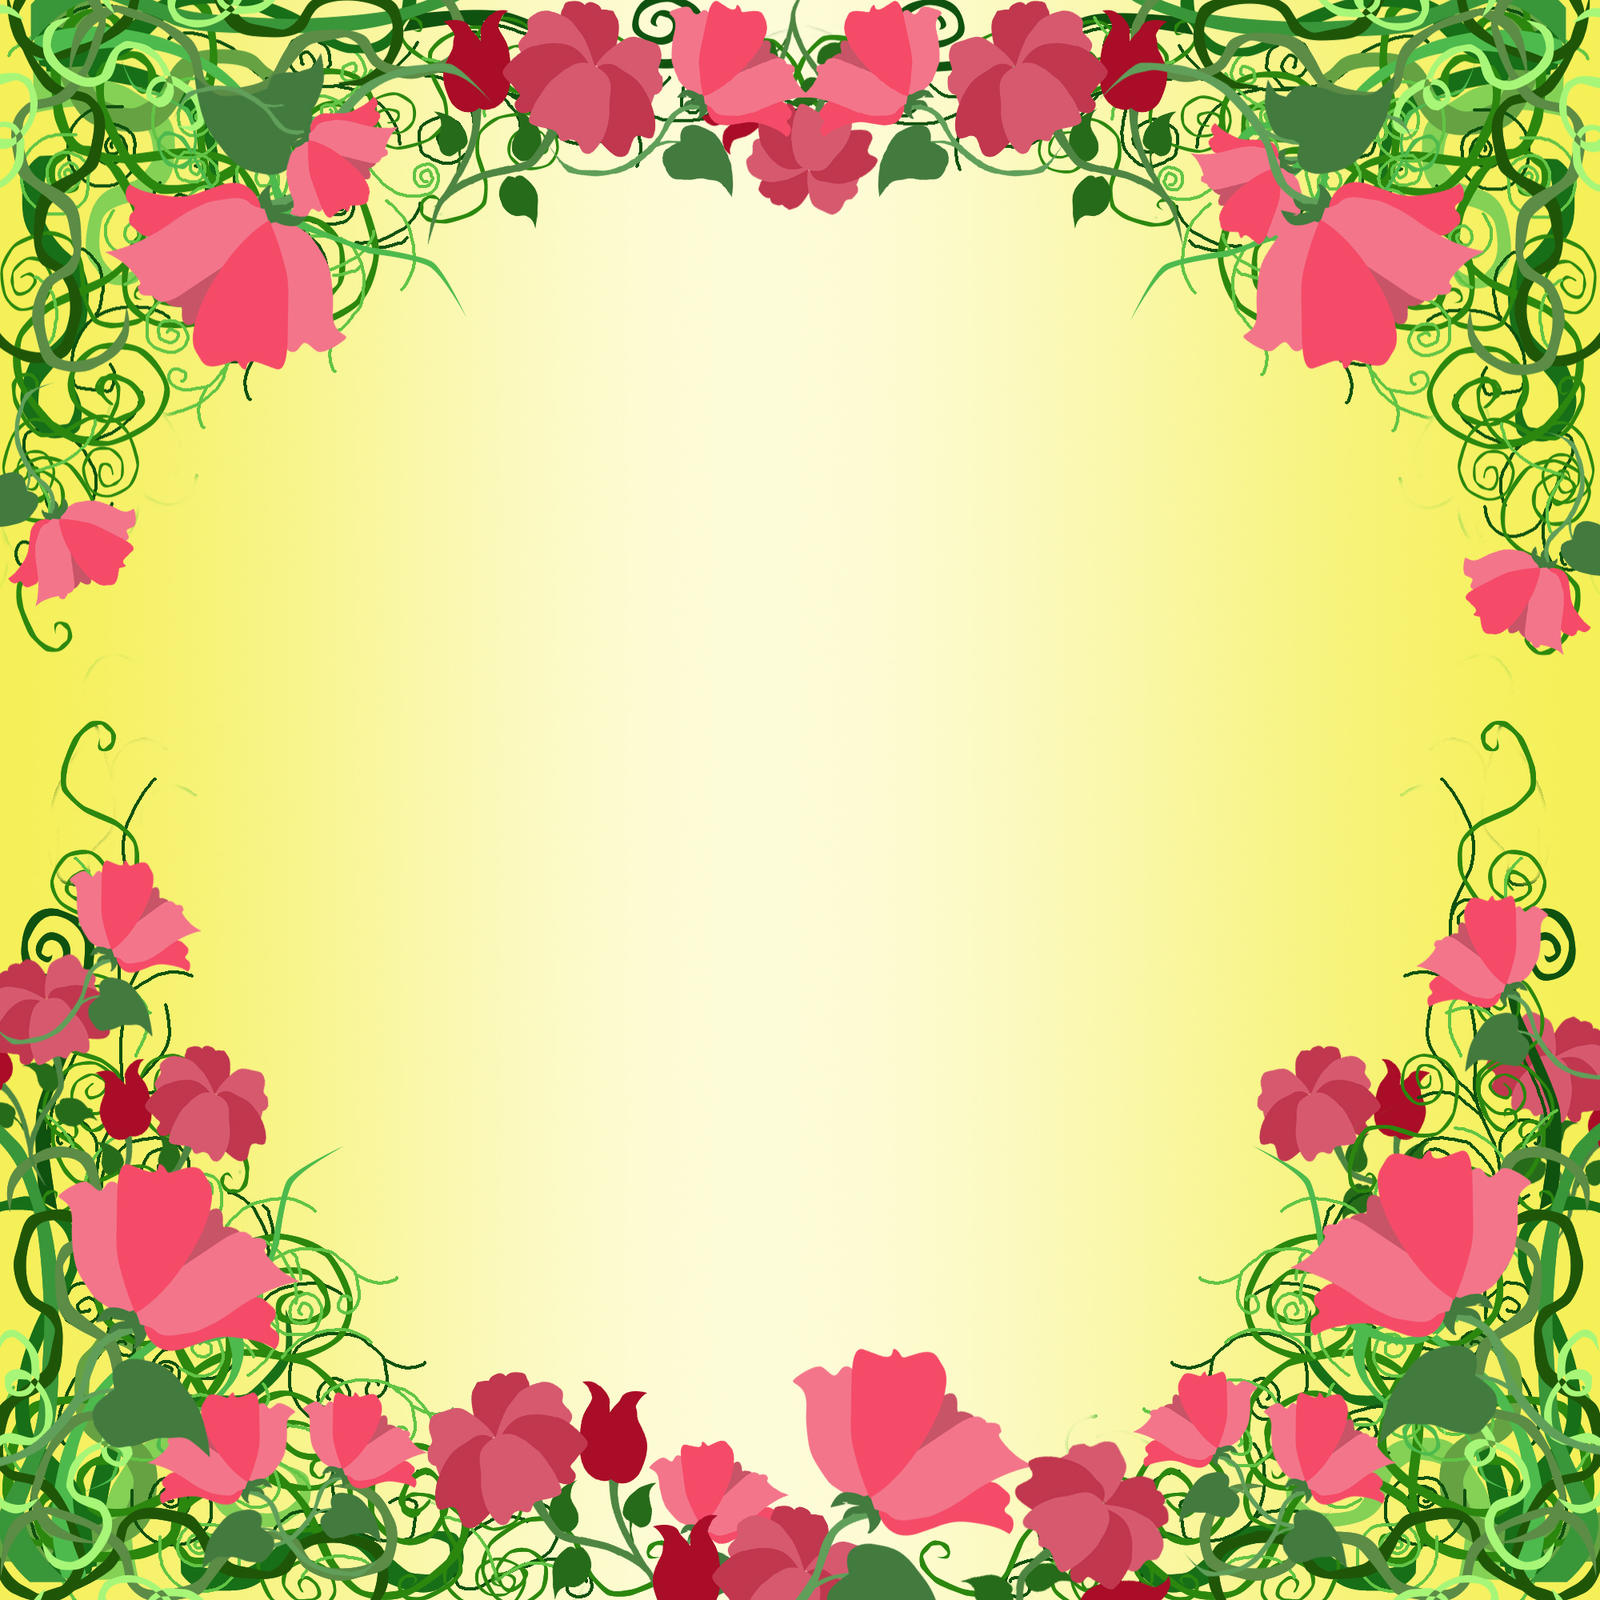 frame by ozaidesigns scraps 2009 2014 ozaidesigns yellow rose frame ...